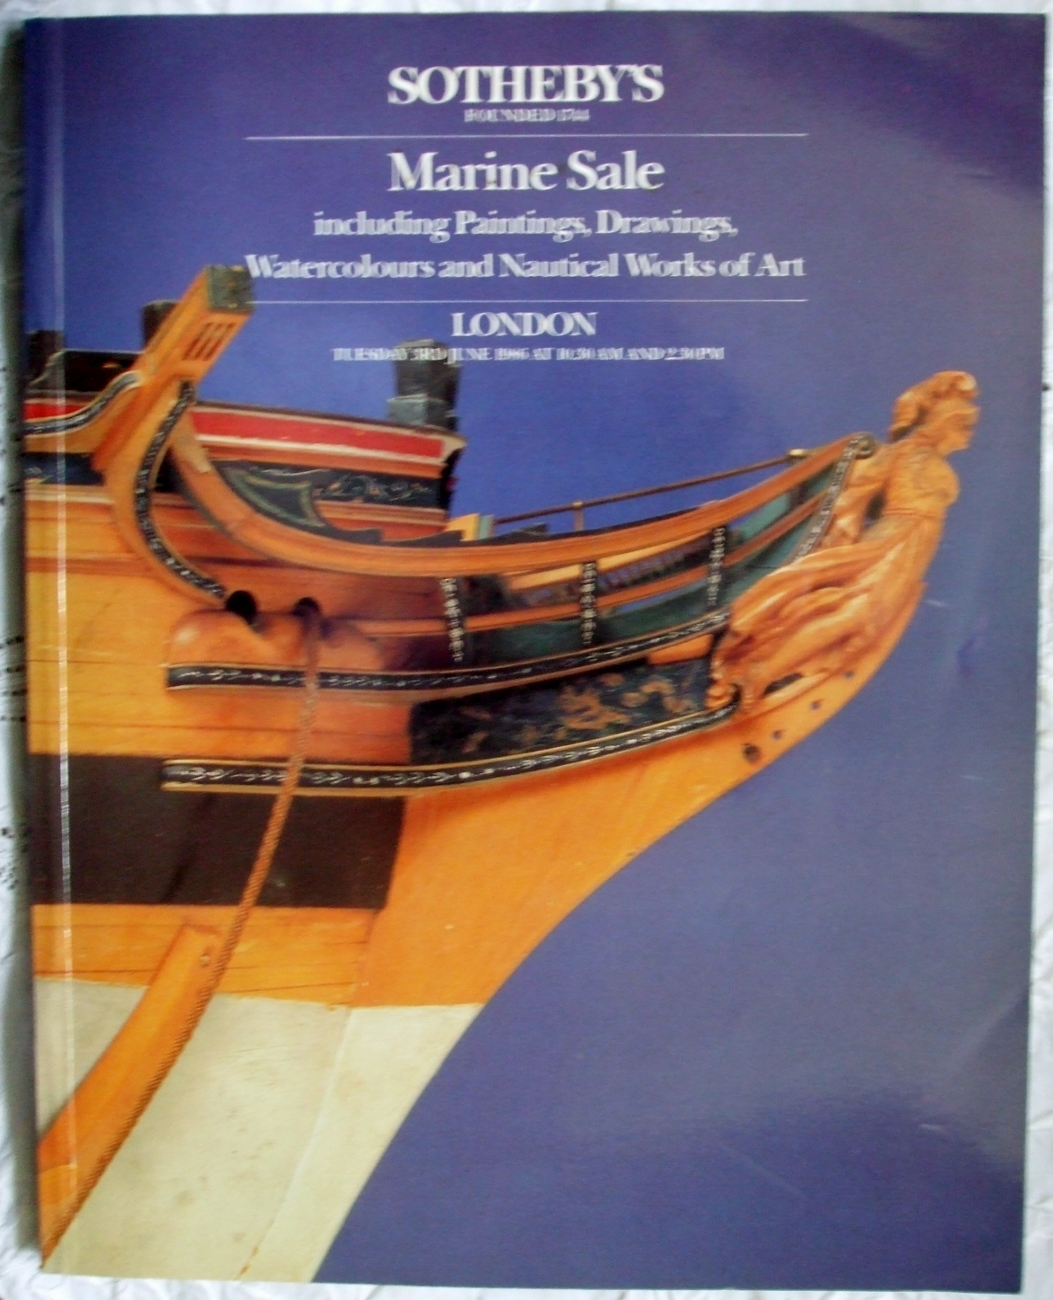 Sotheby's Marine Sale London 03. 06. 1986